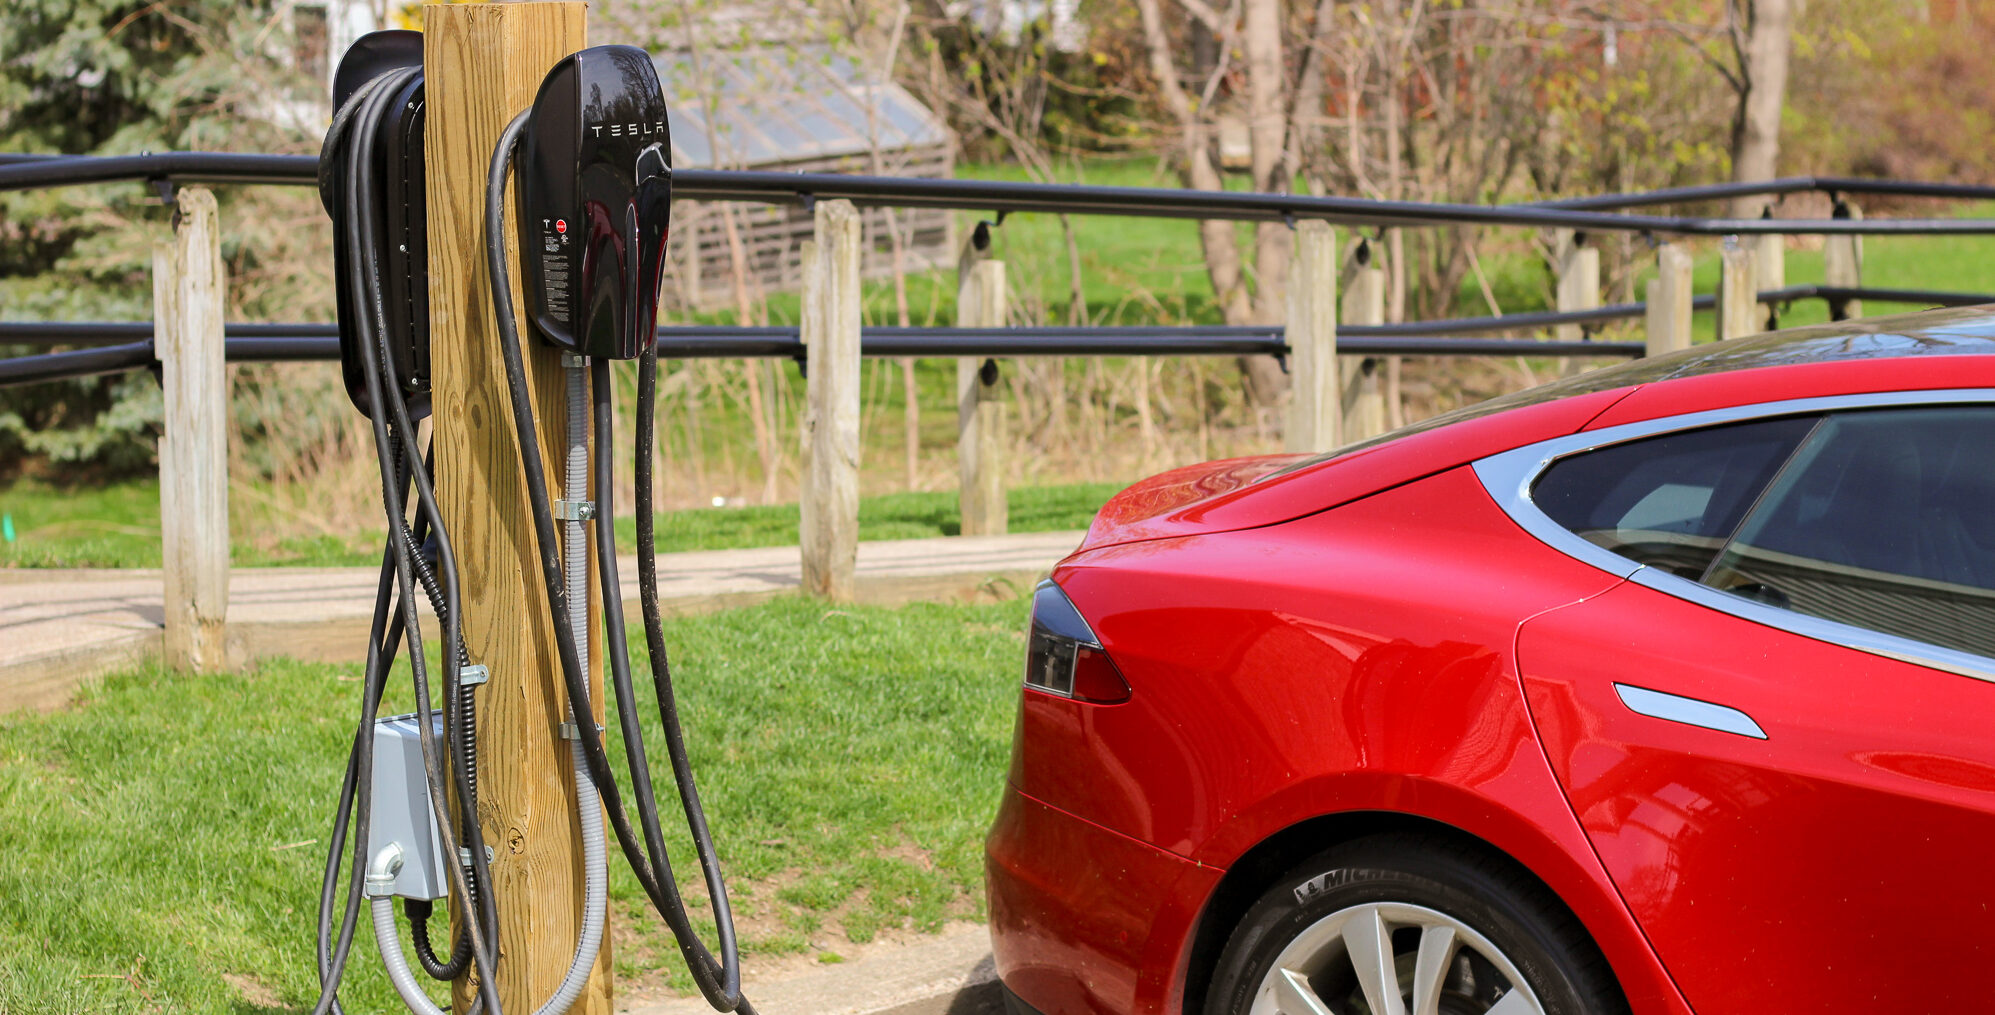 Four Takeaways Employers Should Know About the Electric Vehicle Transition